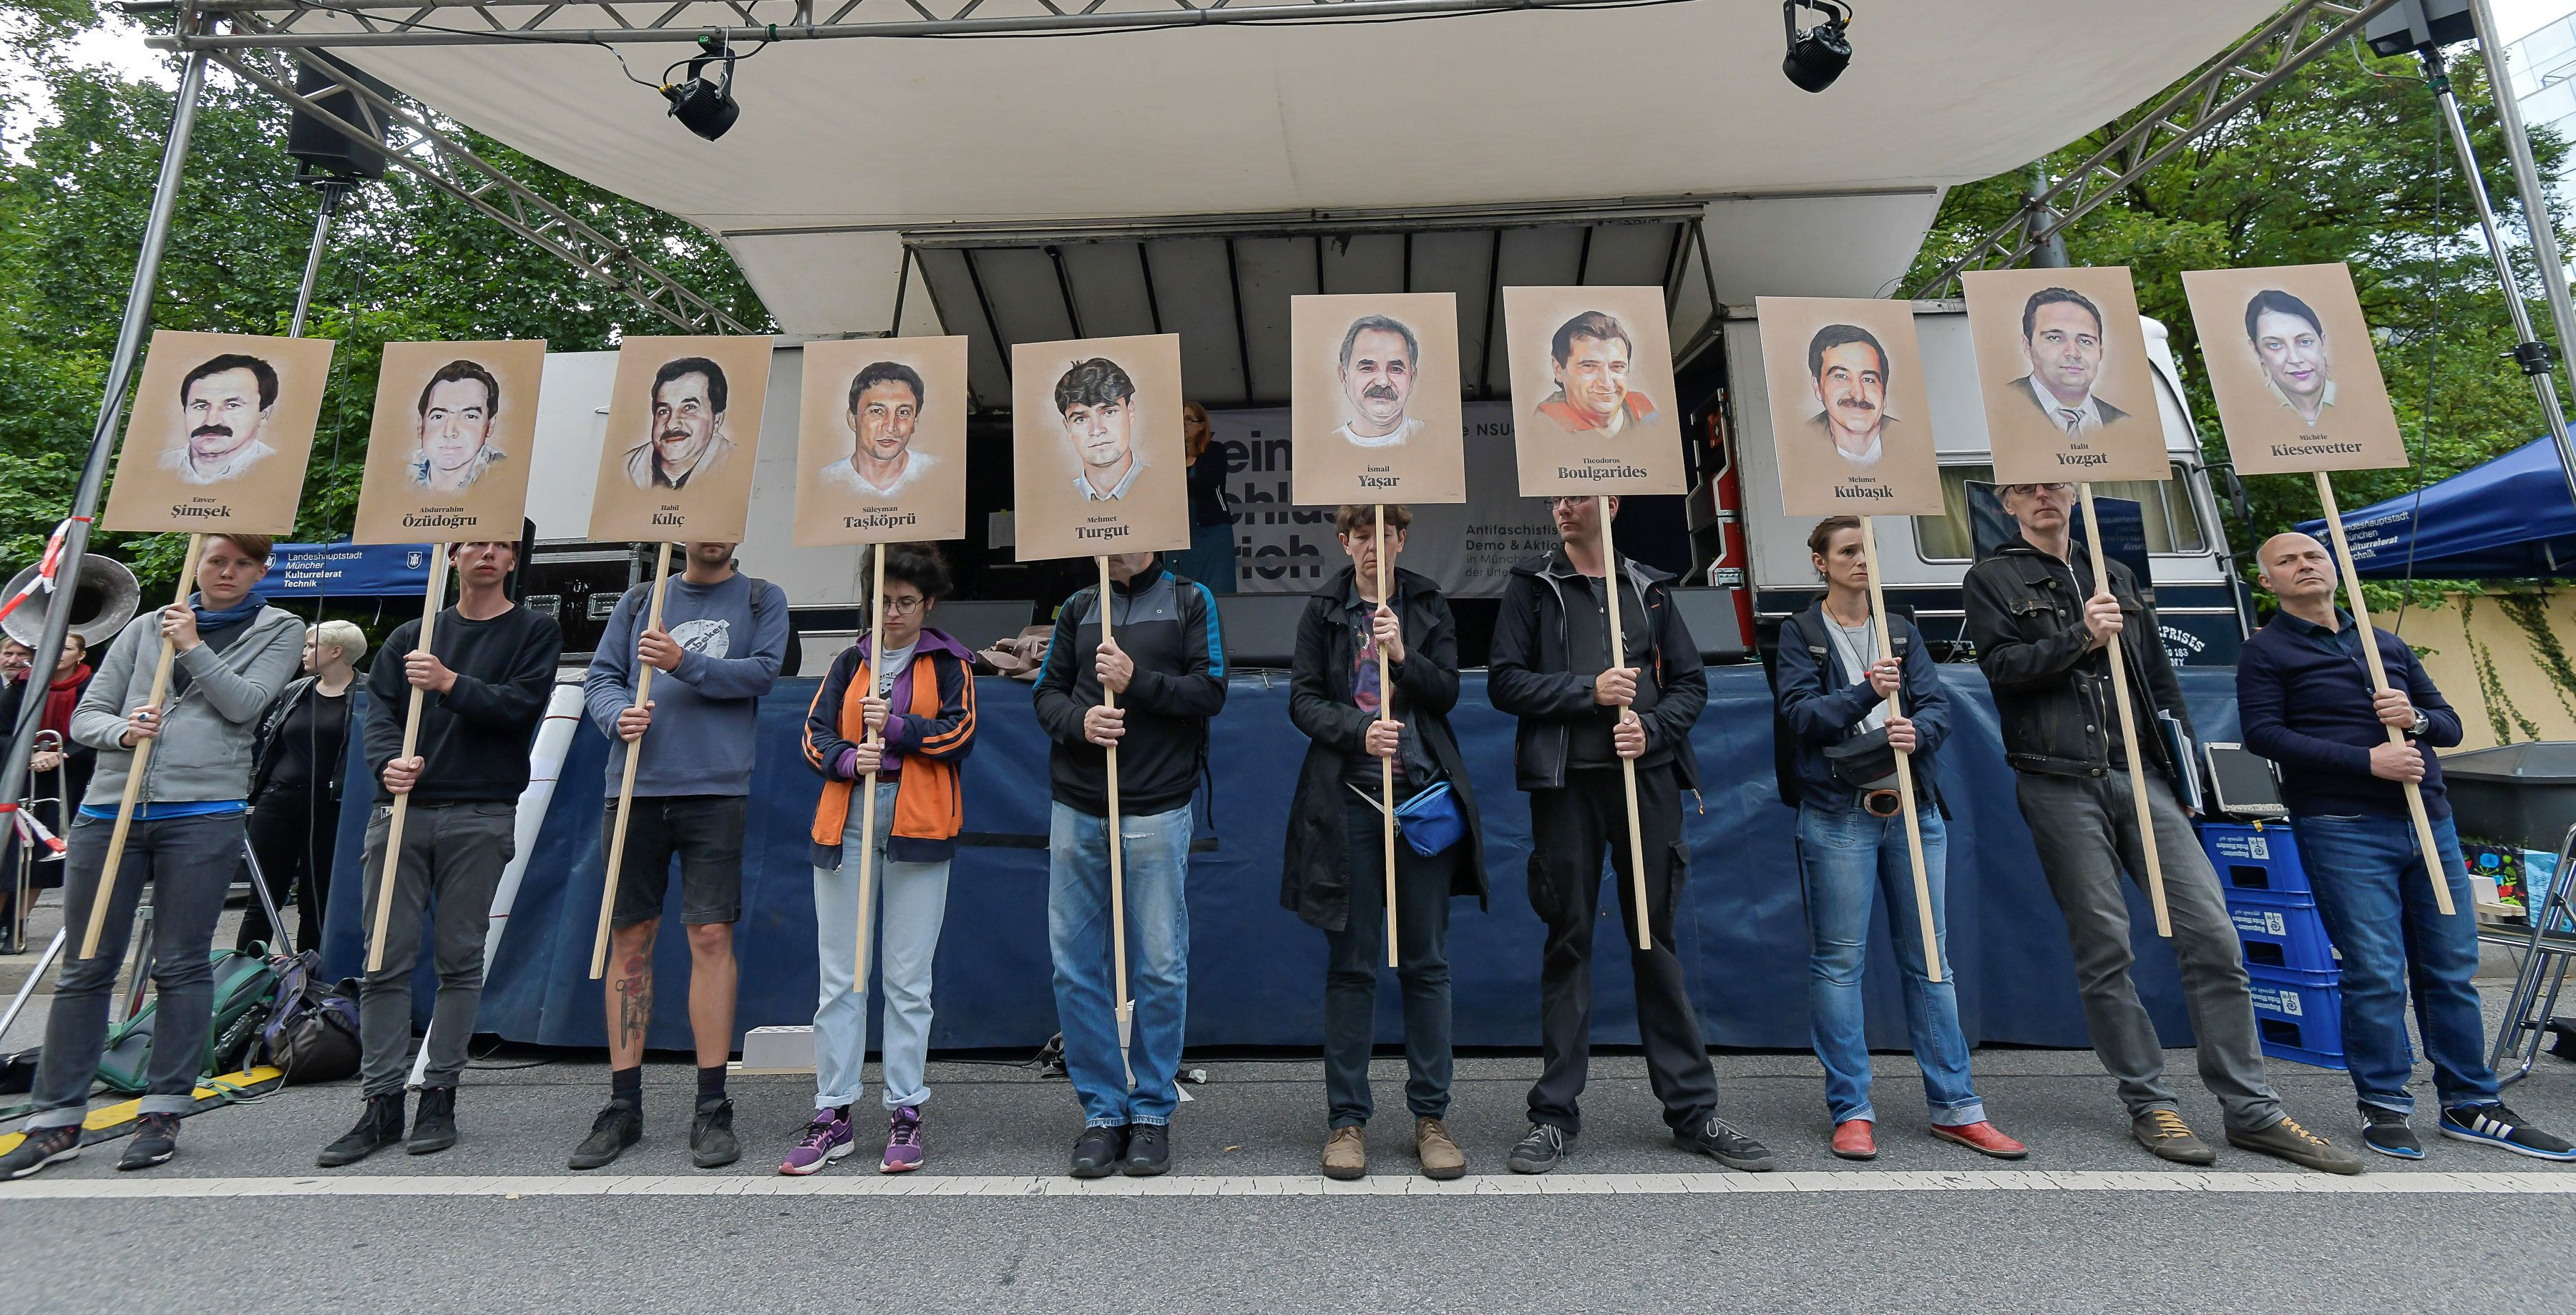 Protesters hold up signs with pictures of the victims of neo-Nazi cell National Socialist Underground (NSU) before the proclamation of sentence in the trial against Beate Zschaepe, the only surviving member of the NSU behind a string of racist murders, in Munich, Germany, on July 11, 2018. - Zschaepe, 43, is accused of complicity in 10 deadly shootings of mostly Turkish and Greek-born immigrants carried out by clandestine trio the National Socialist Underground (NSU). (Photo by Gunter SCHIFFMANN / AFP) (Photo credit should read GUNTER SCHIFFMANN/AFP/Getty Images)